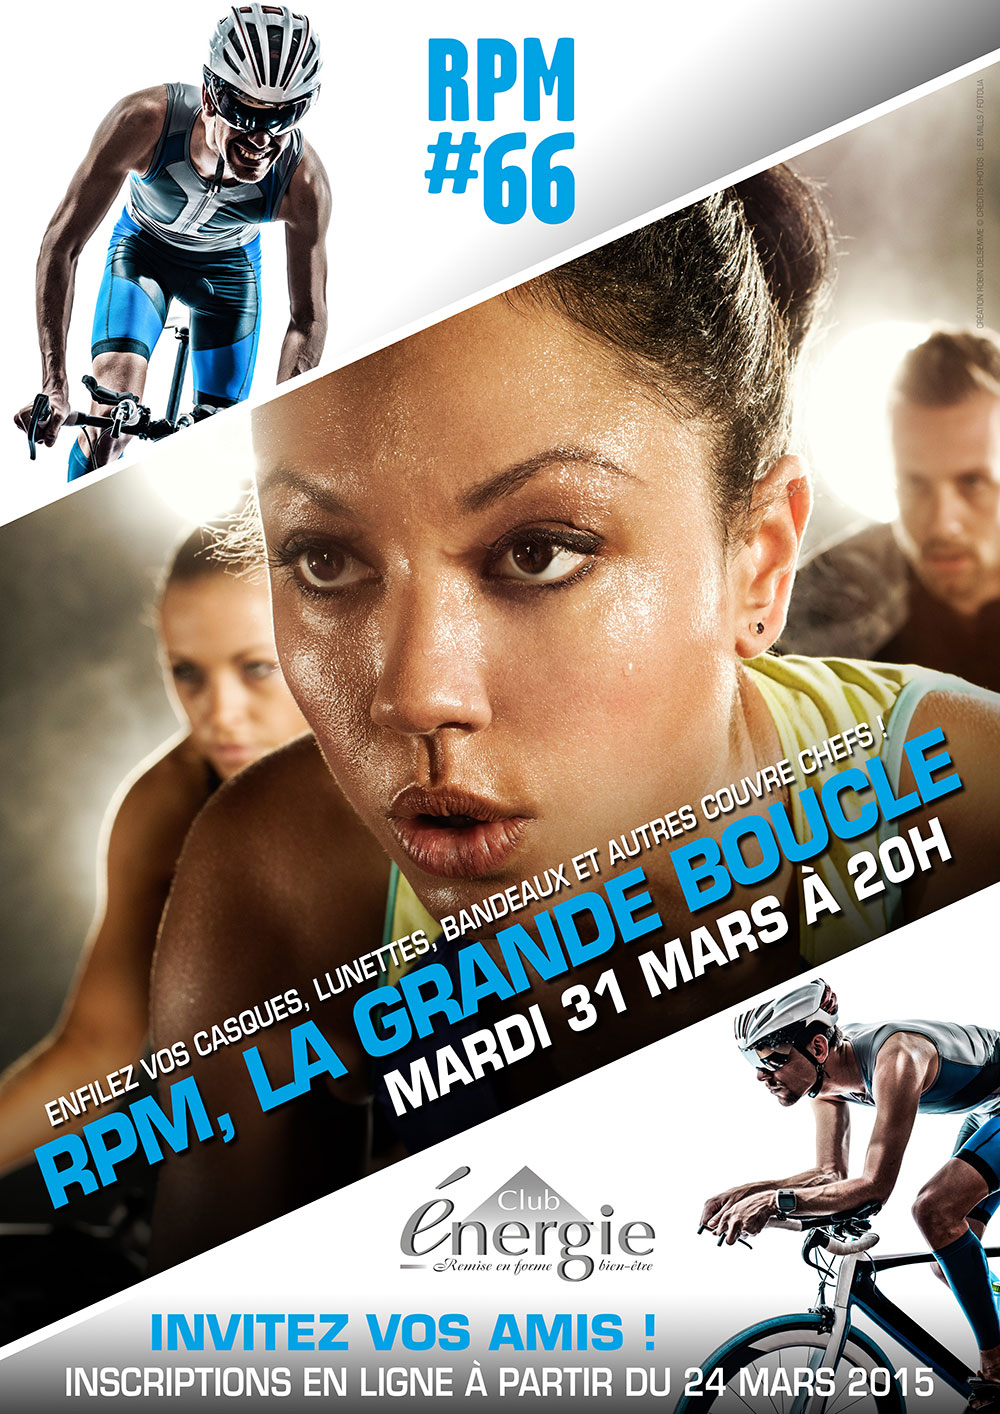 lancements lesmills rpm tour de france la grande boucle club energie fitness orleans biking